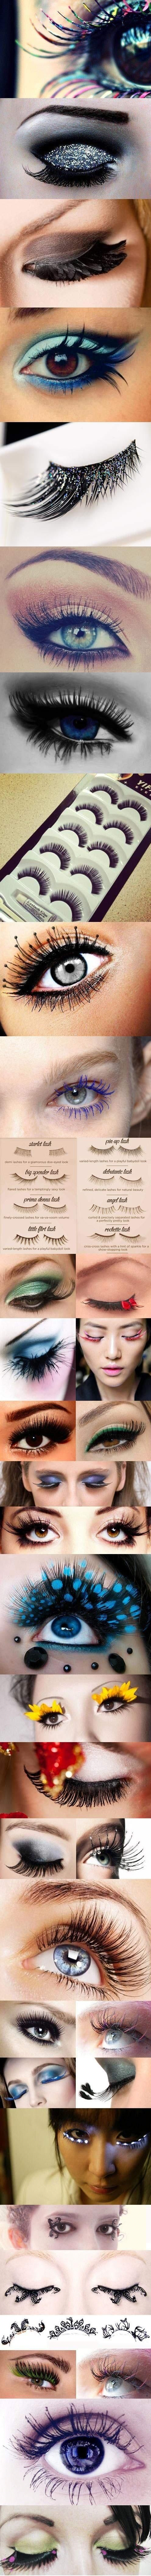 Learn how to apply different lashes at our Advanced Eyeliner and Eyelash Class call 619-272-0229 for more info.